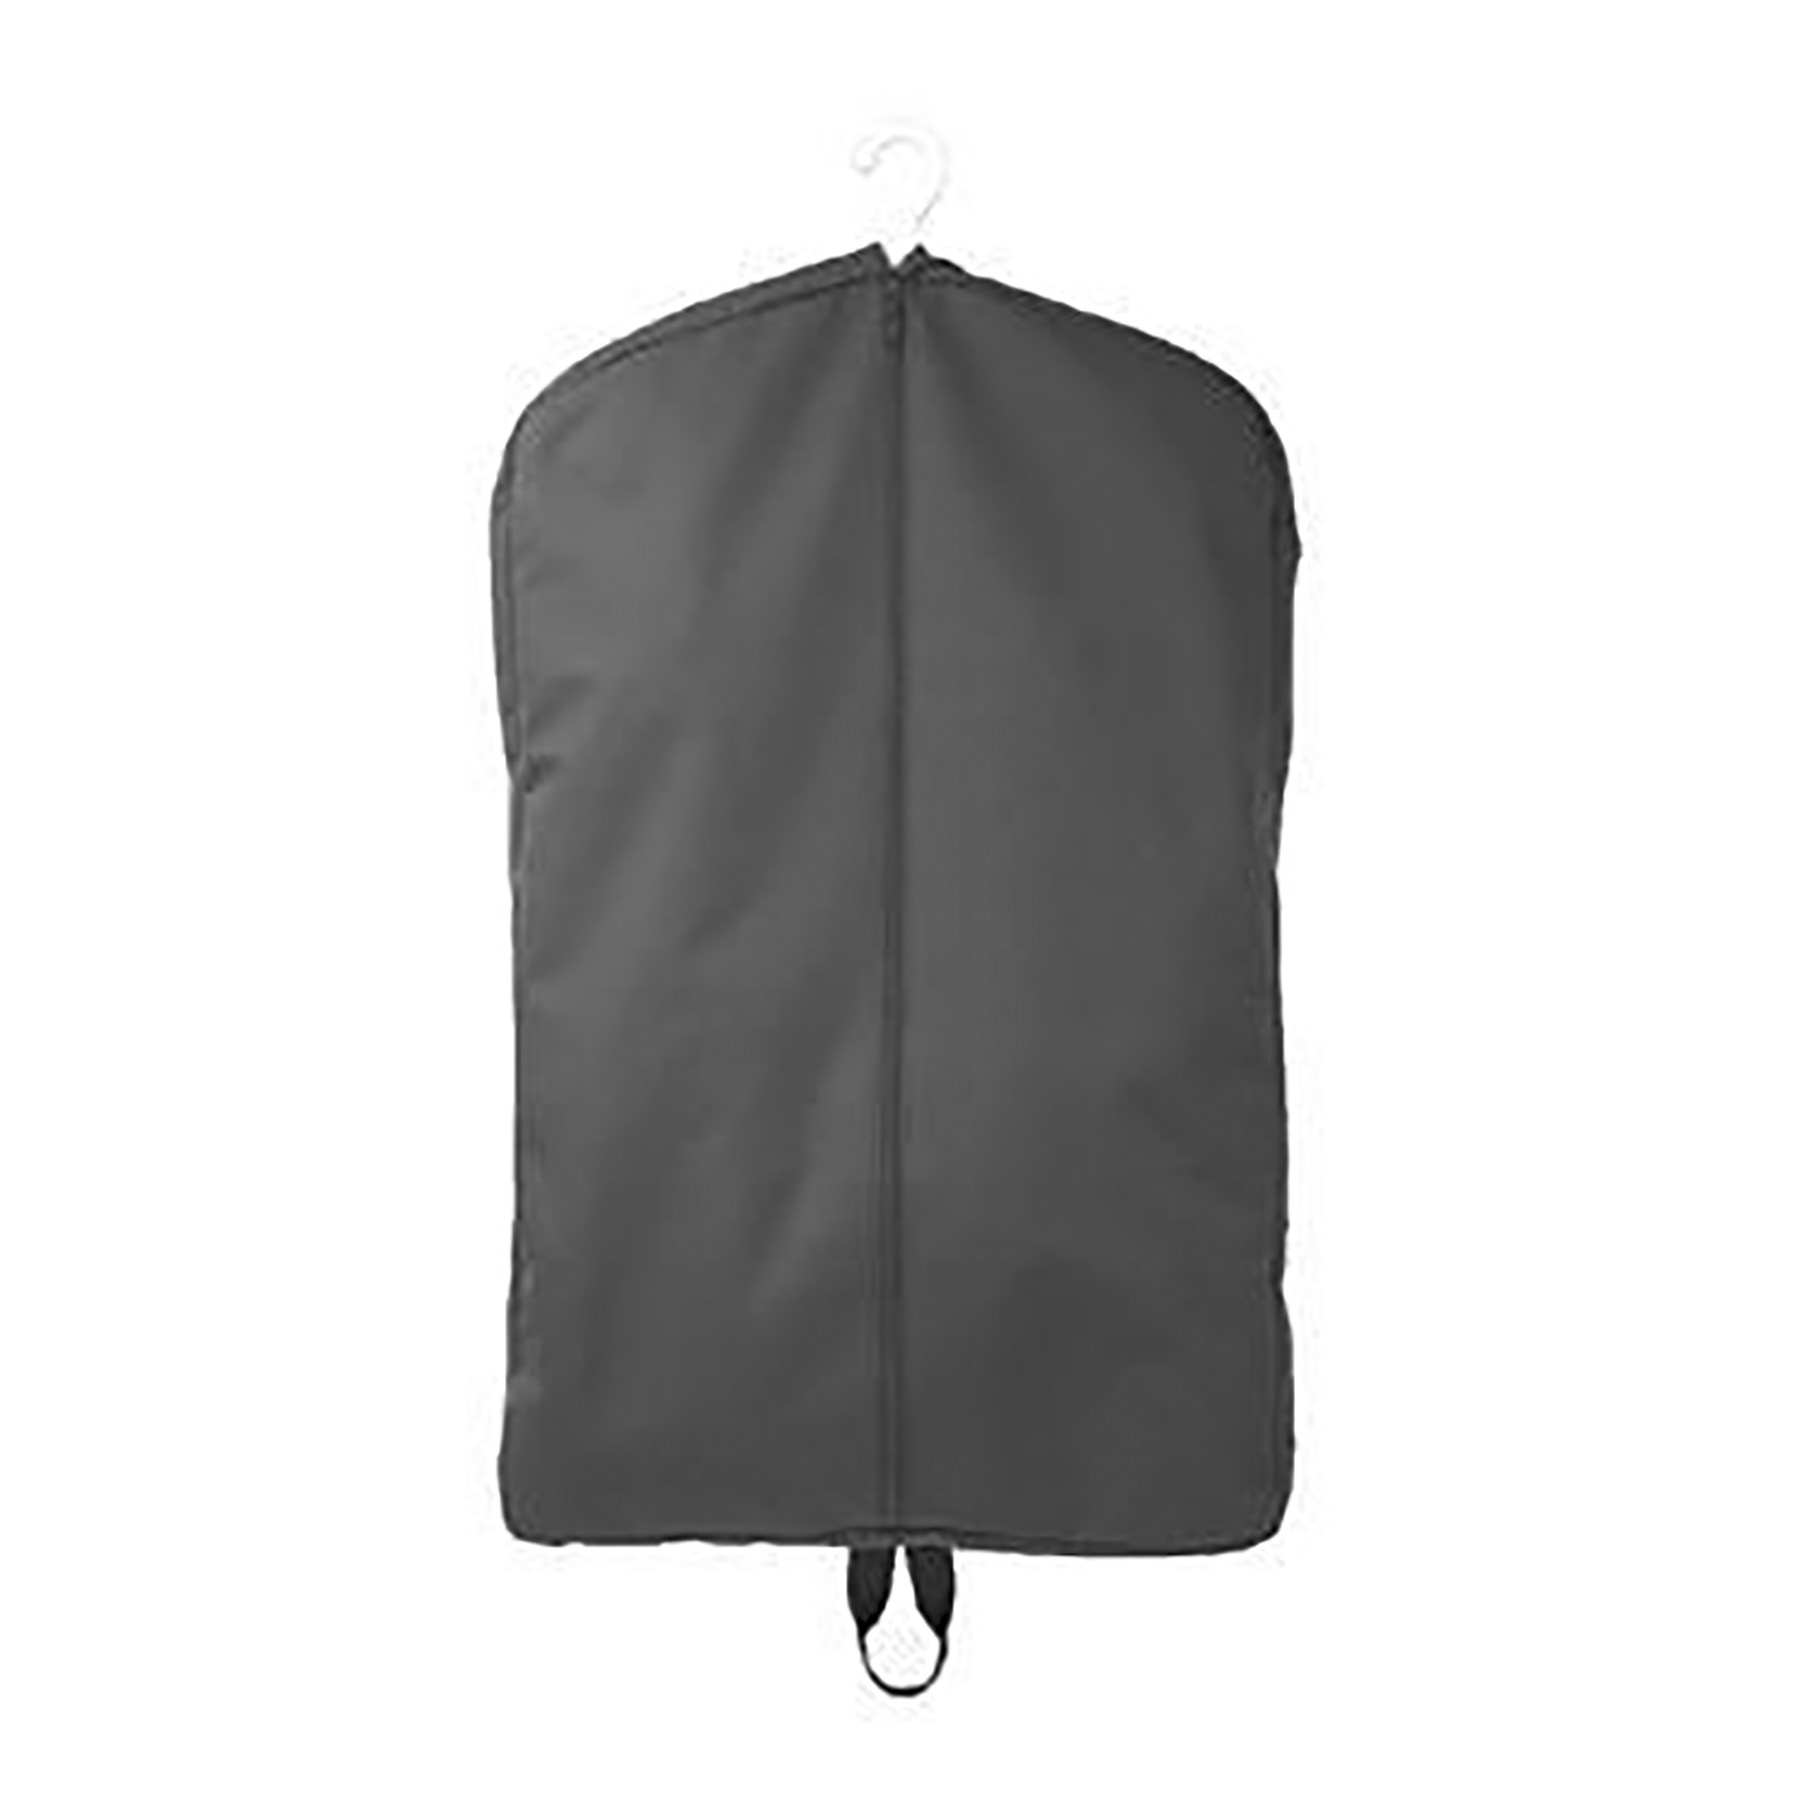 Mercury Luggage Garment Bag - Black